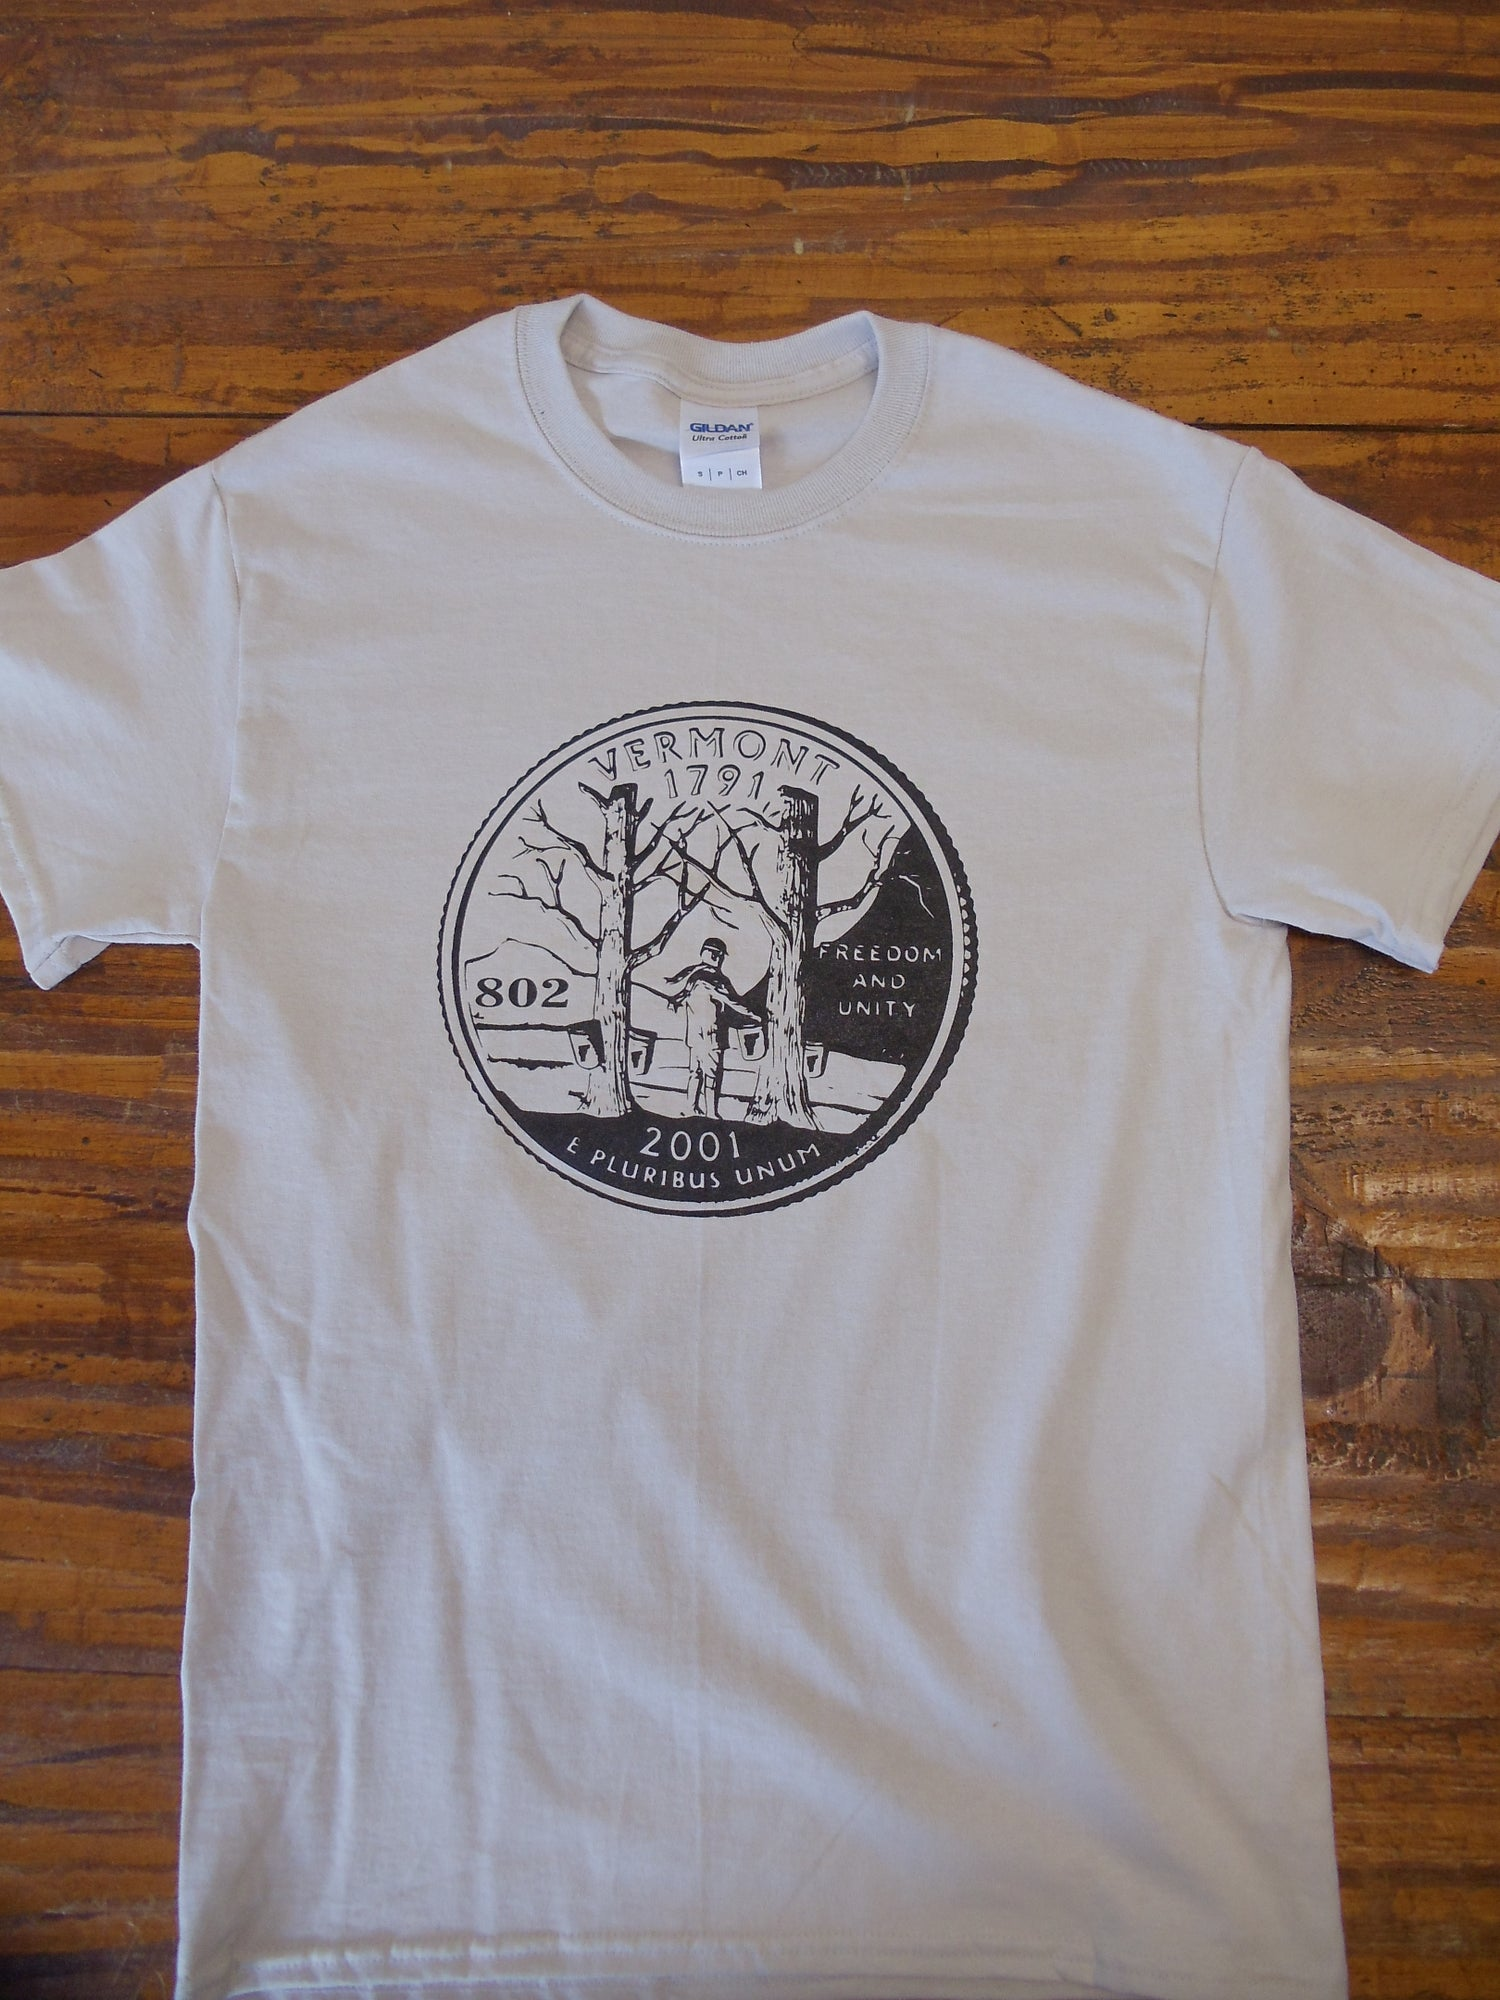 Image of Vermont State Quarter T-Shirt - vermont clothing - vermont store - 802 clothing - Vermont shirt